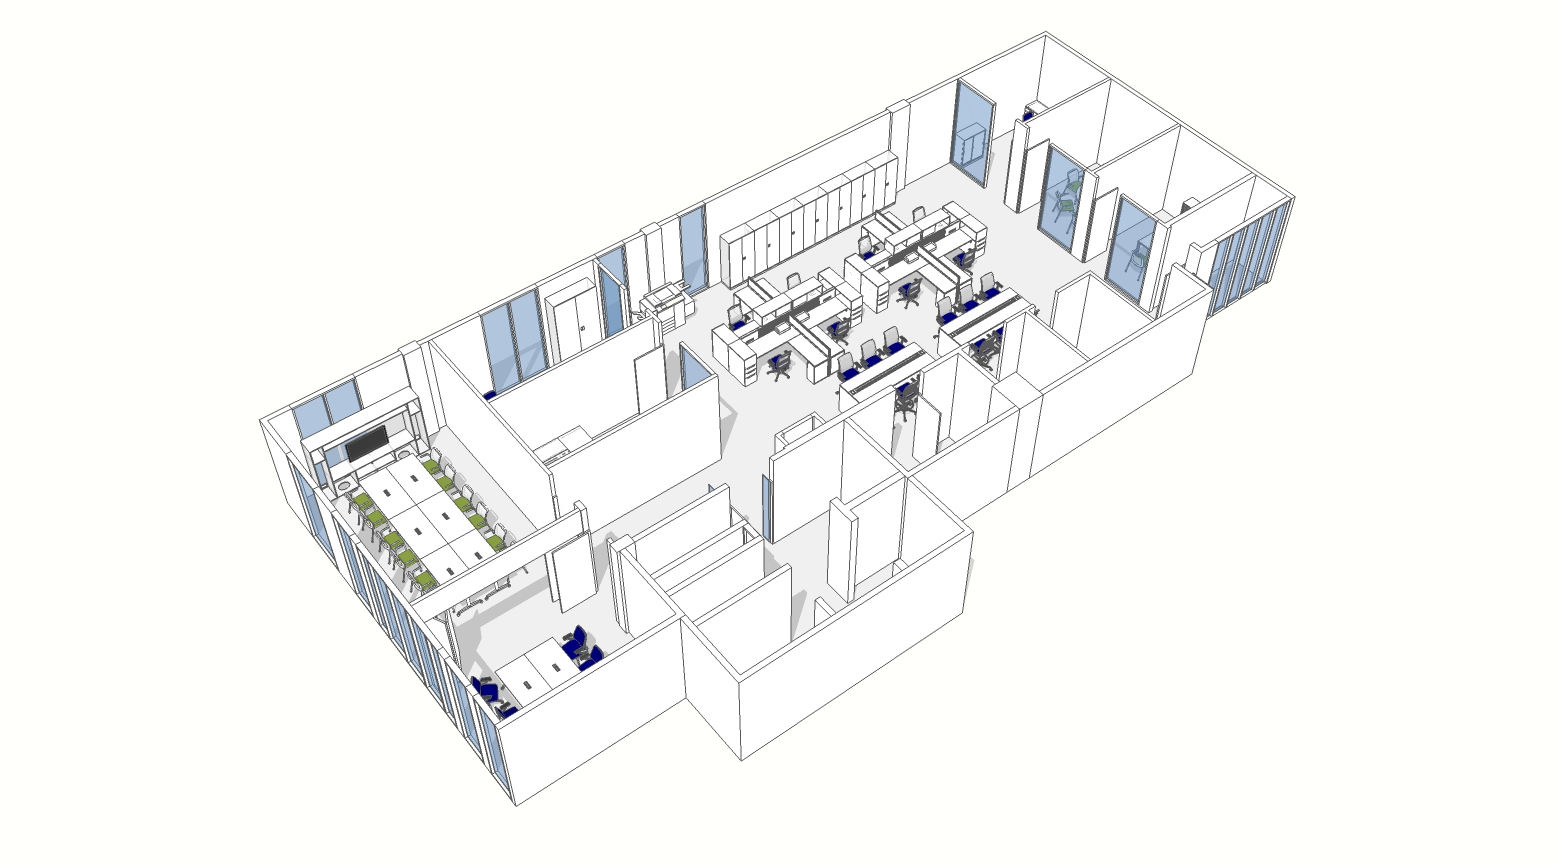 Ferring Pharmaceuticals Proposal Layout Plan_R6_SIDE VIEW A